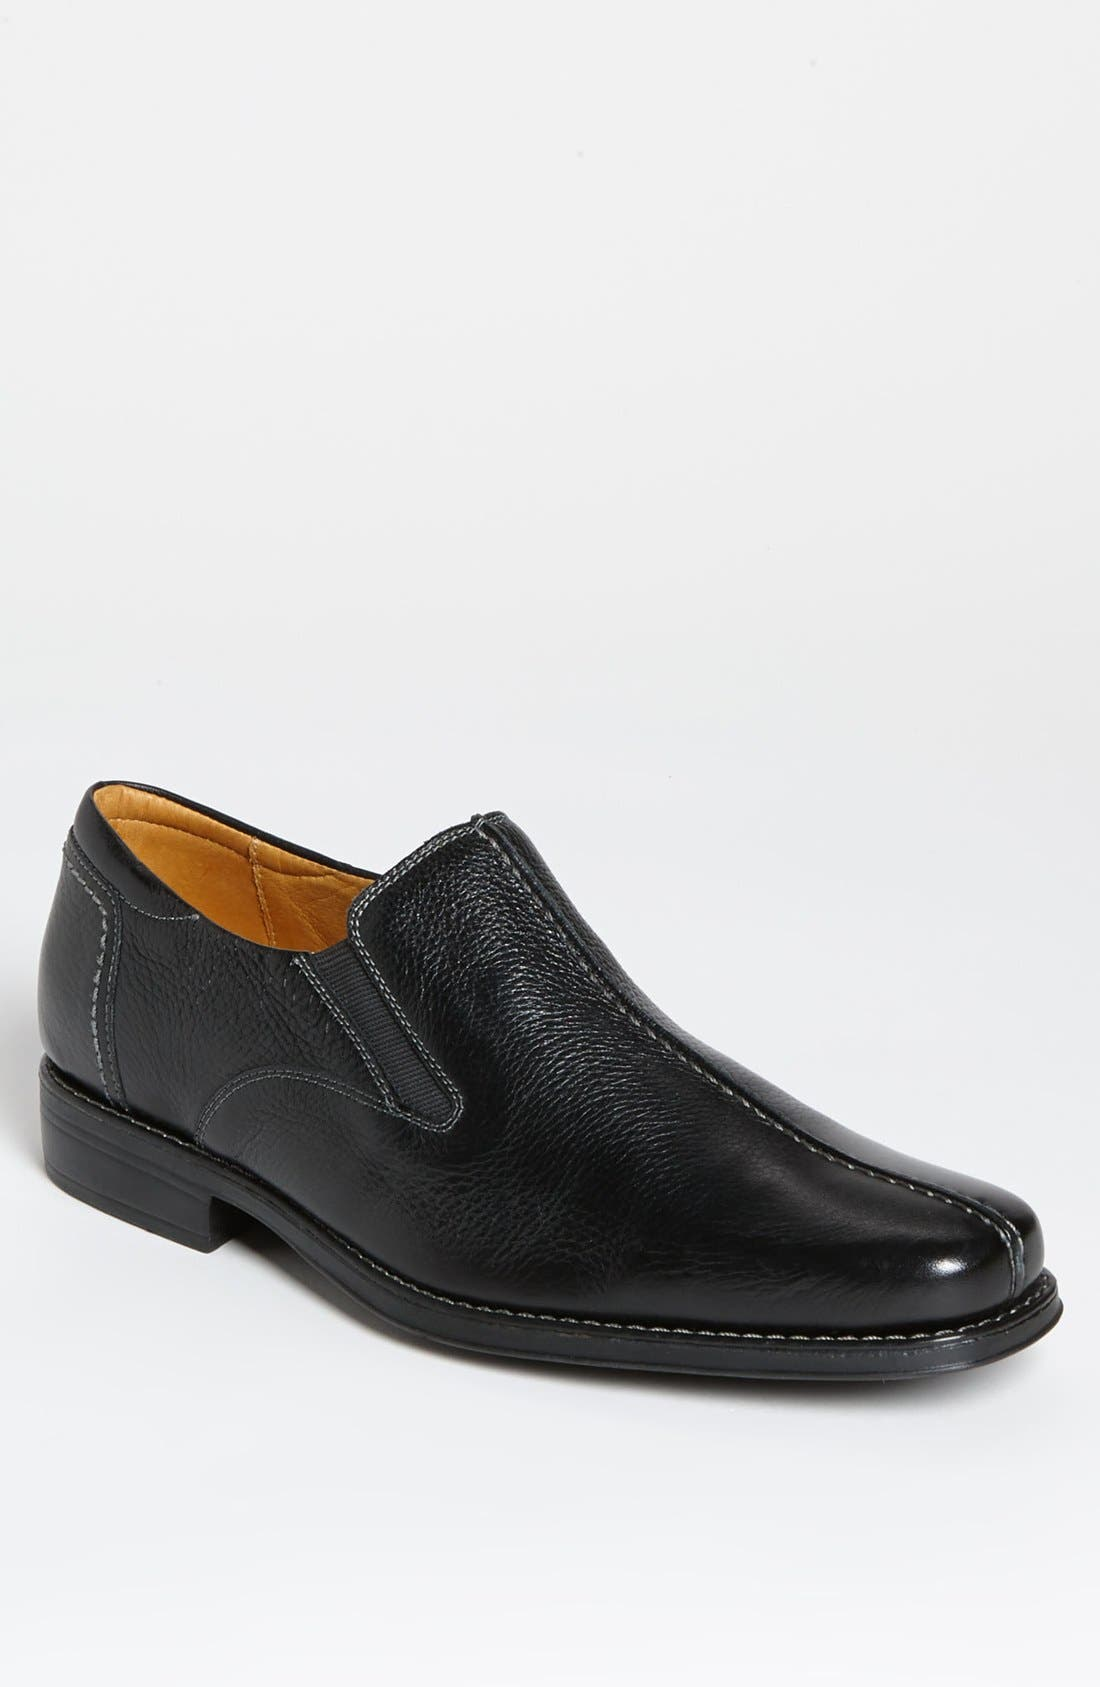 'Tampa' Loafer,                             Main thumbnail 1, color,                             BLACK